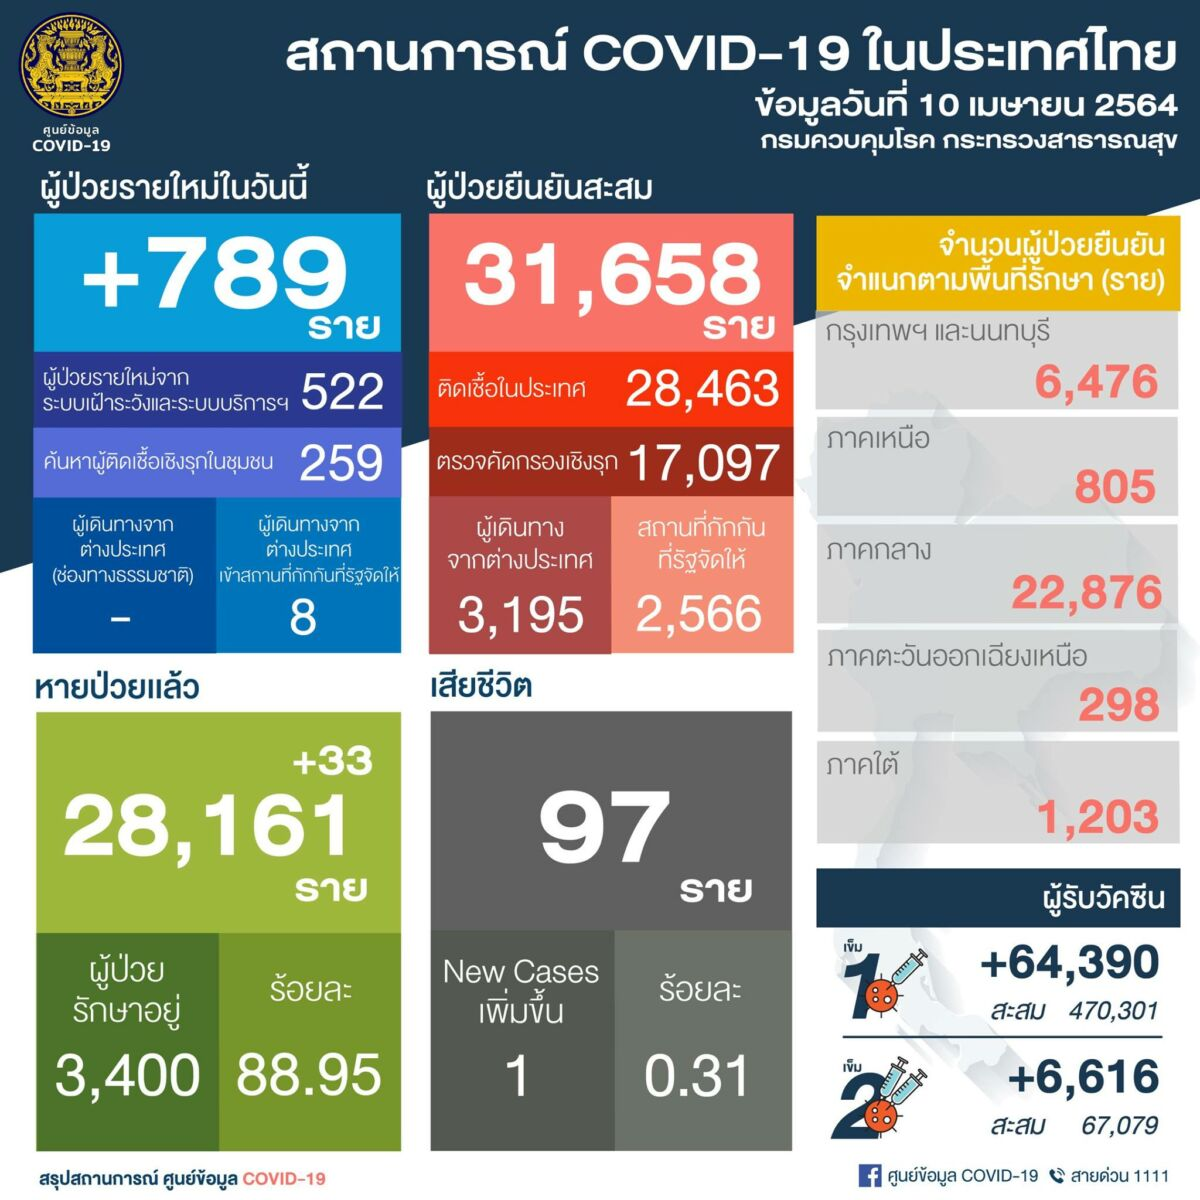 Big Covid-19 numbers today: 789 new infections, 1 death | News by Thaiger